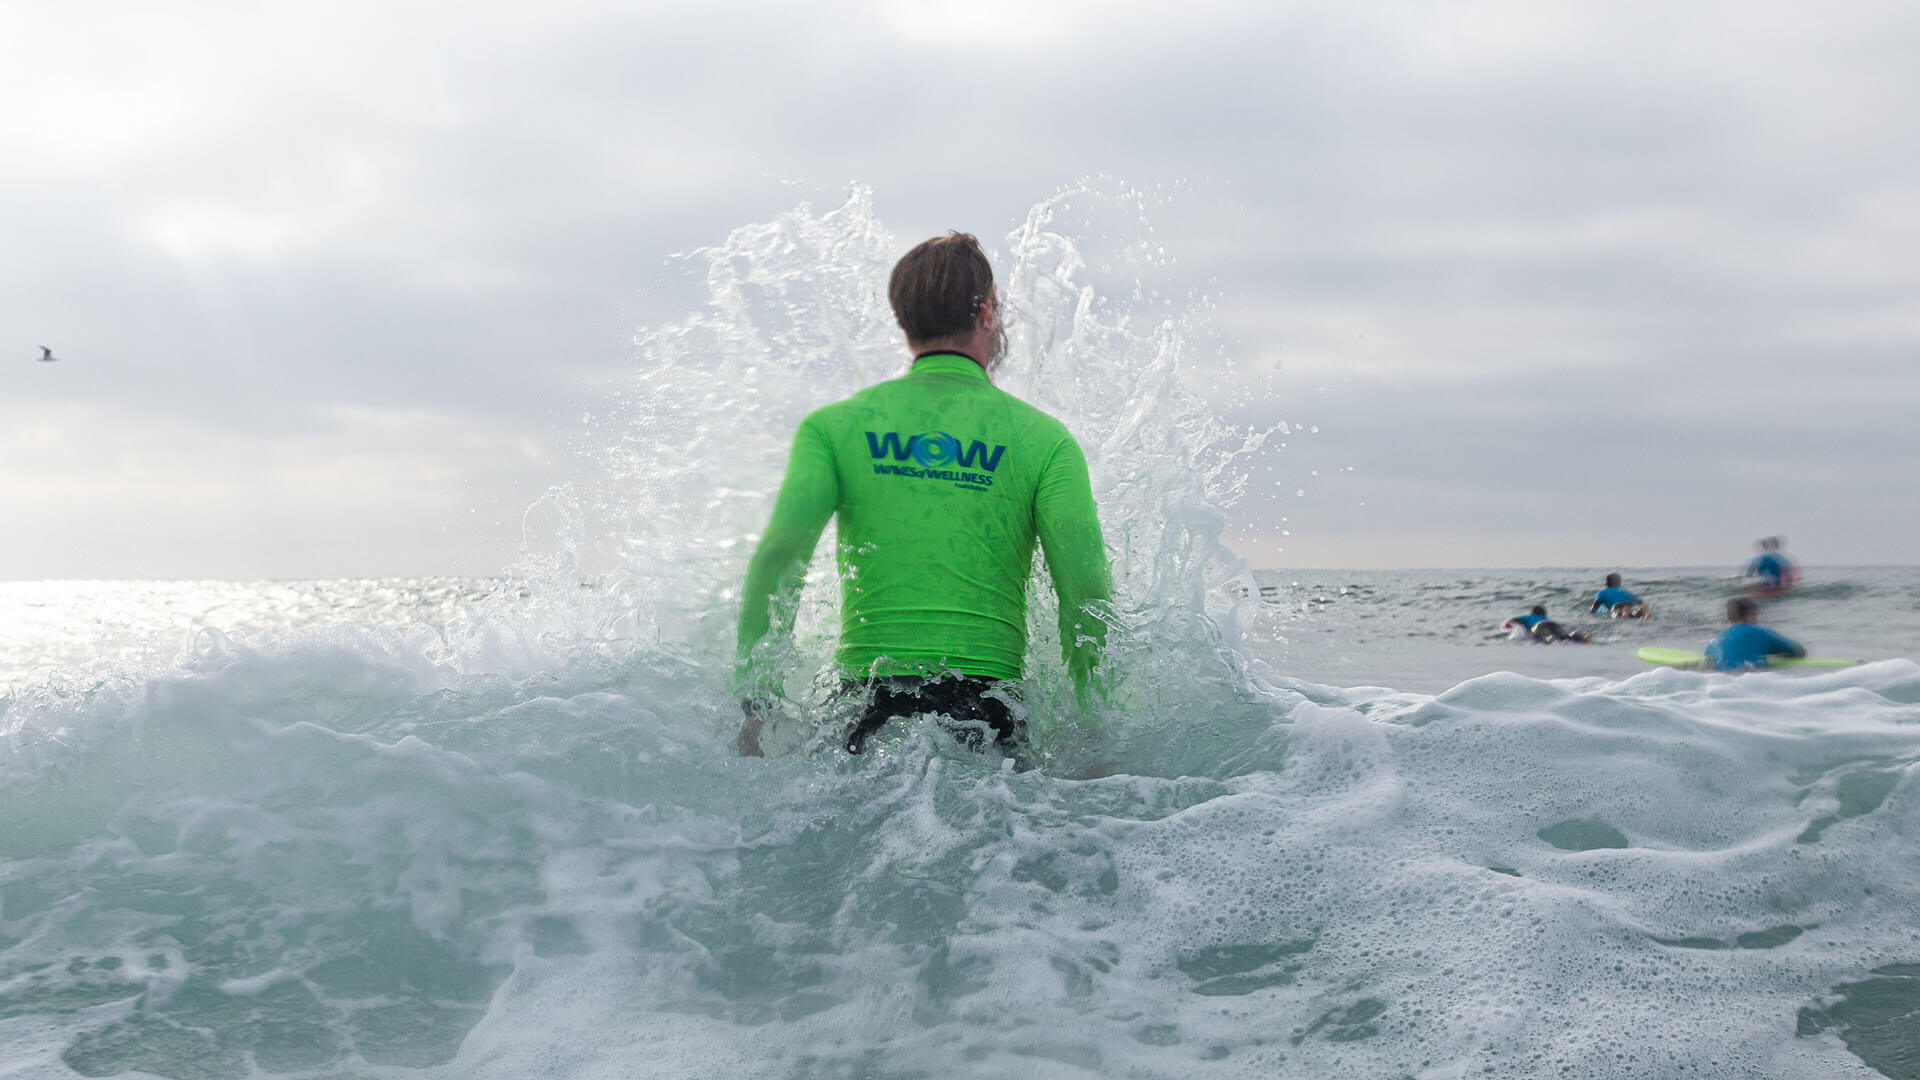 Waves of Wellness surfing